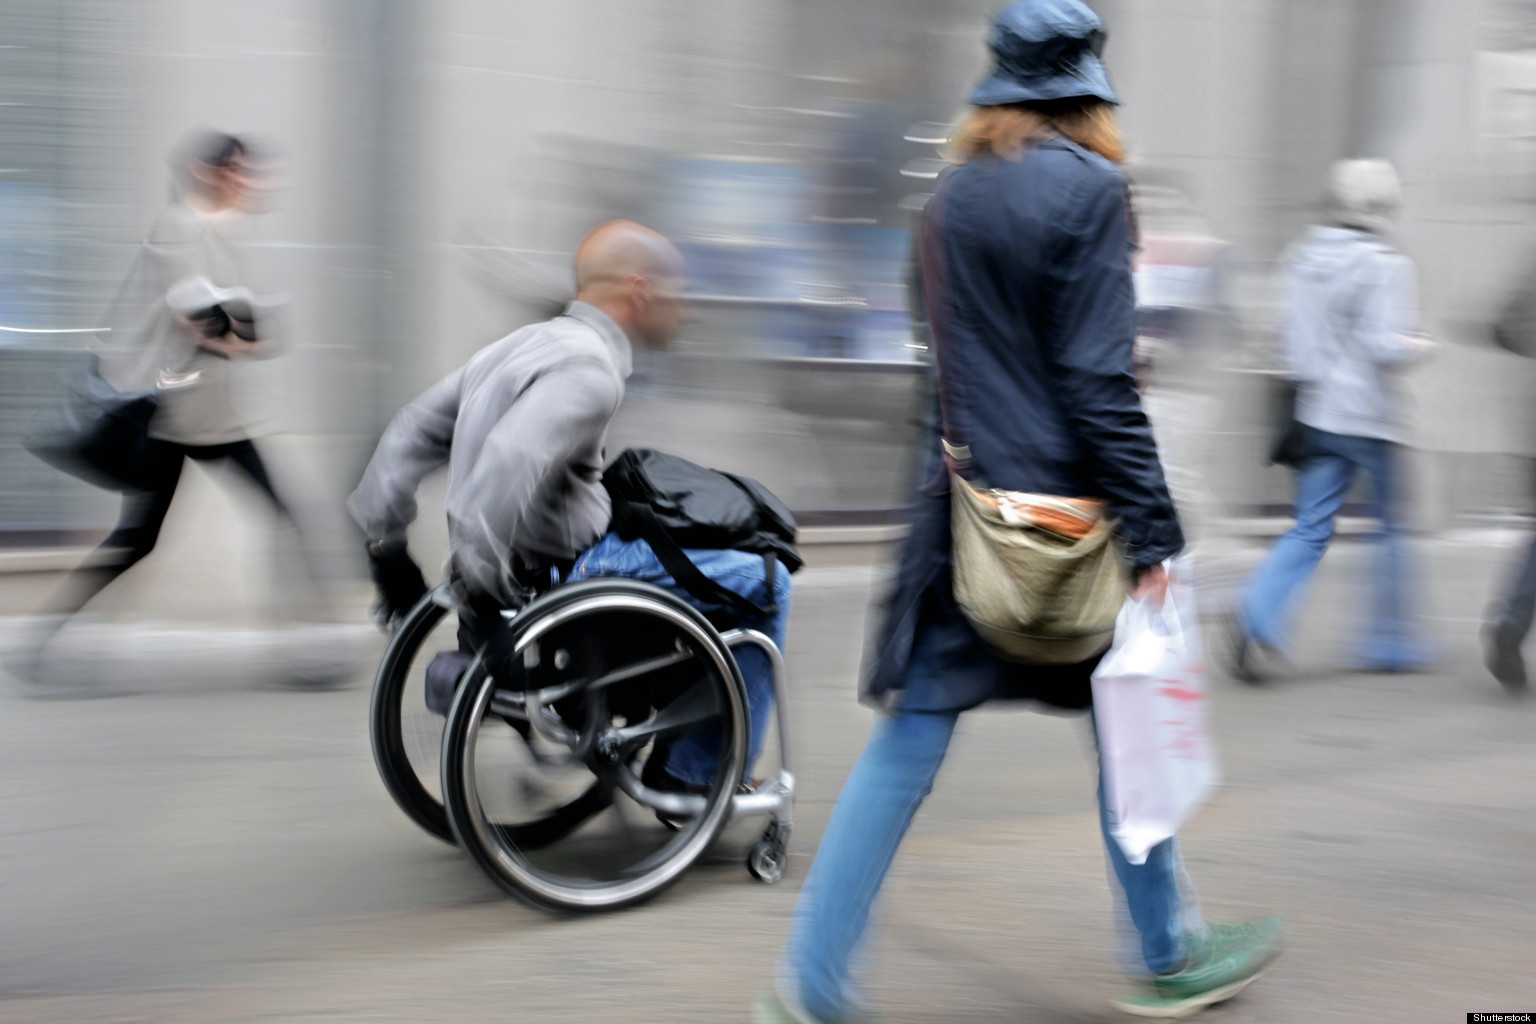 People with disabilities as an invisible workforce potential